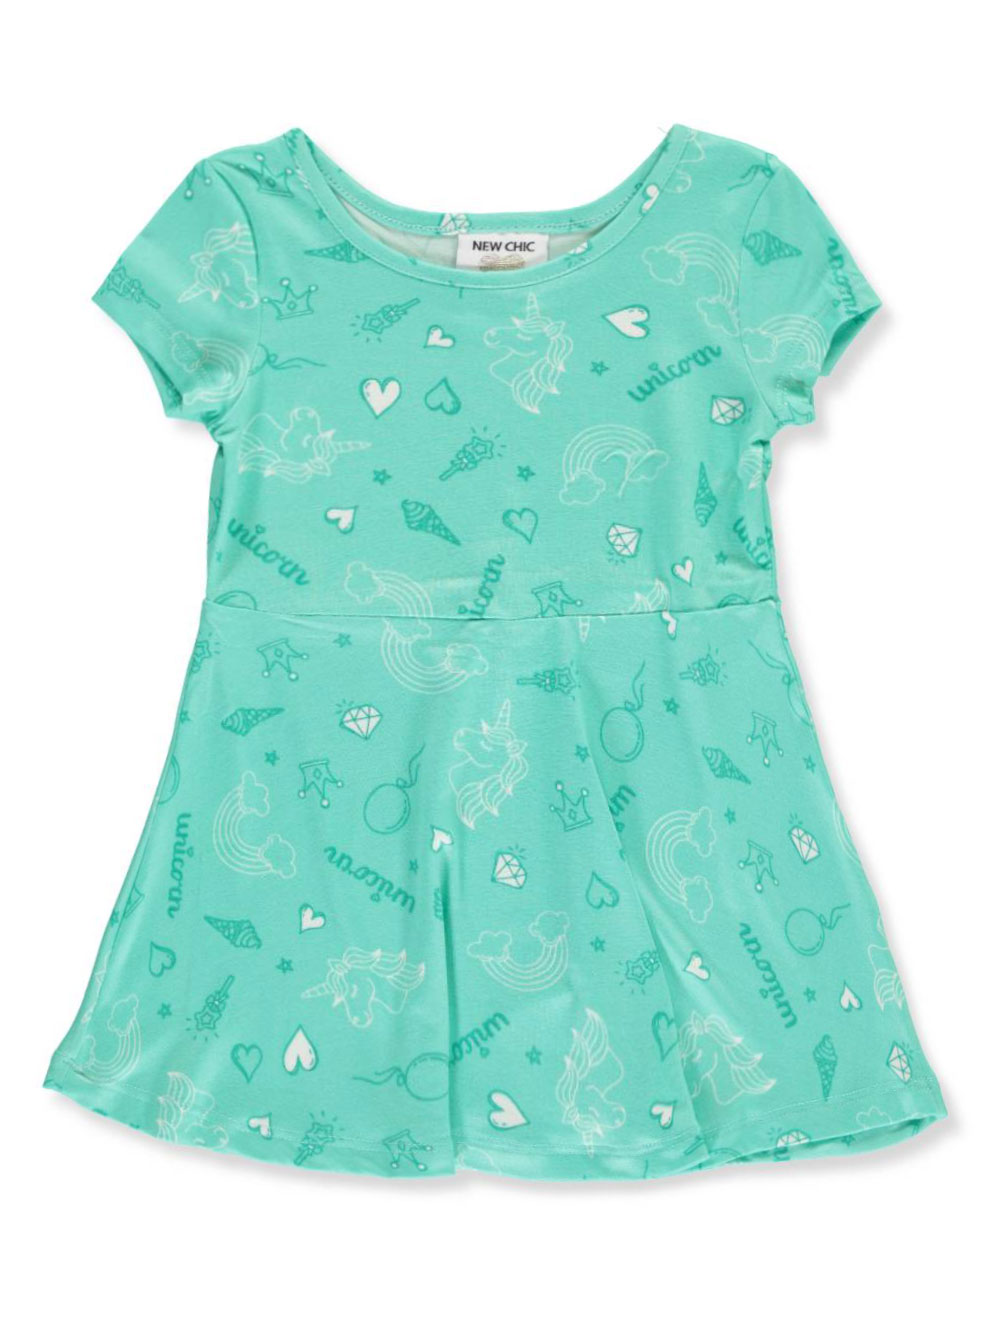 0aced2b53 Baby Girls' Skater Dress by New Chic in Aqua from Cookie's Kids